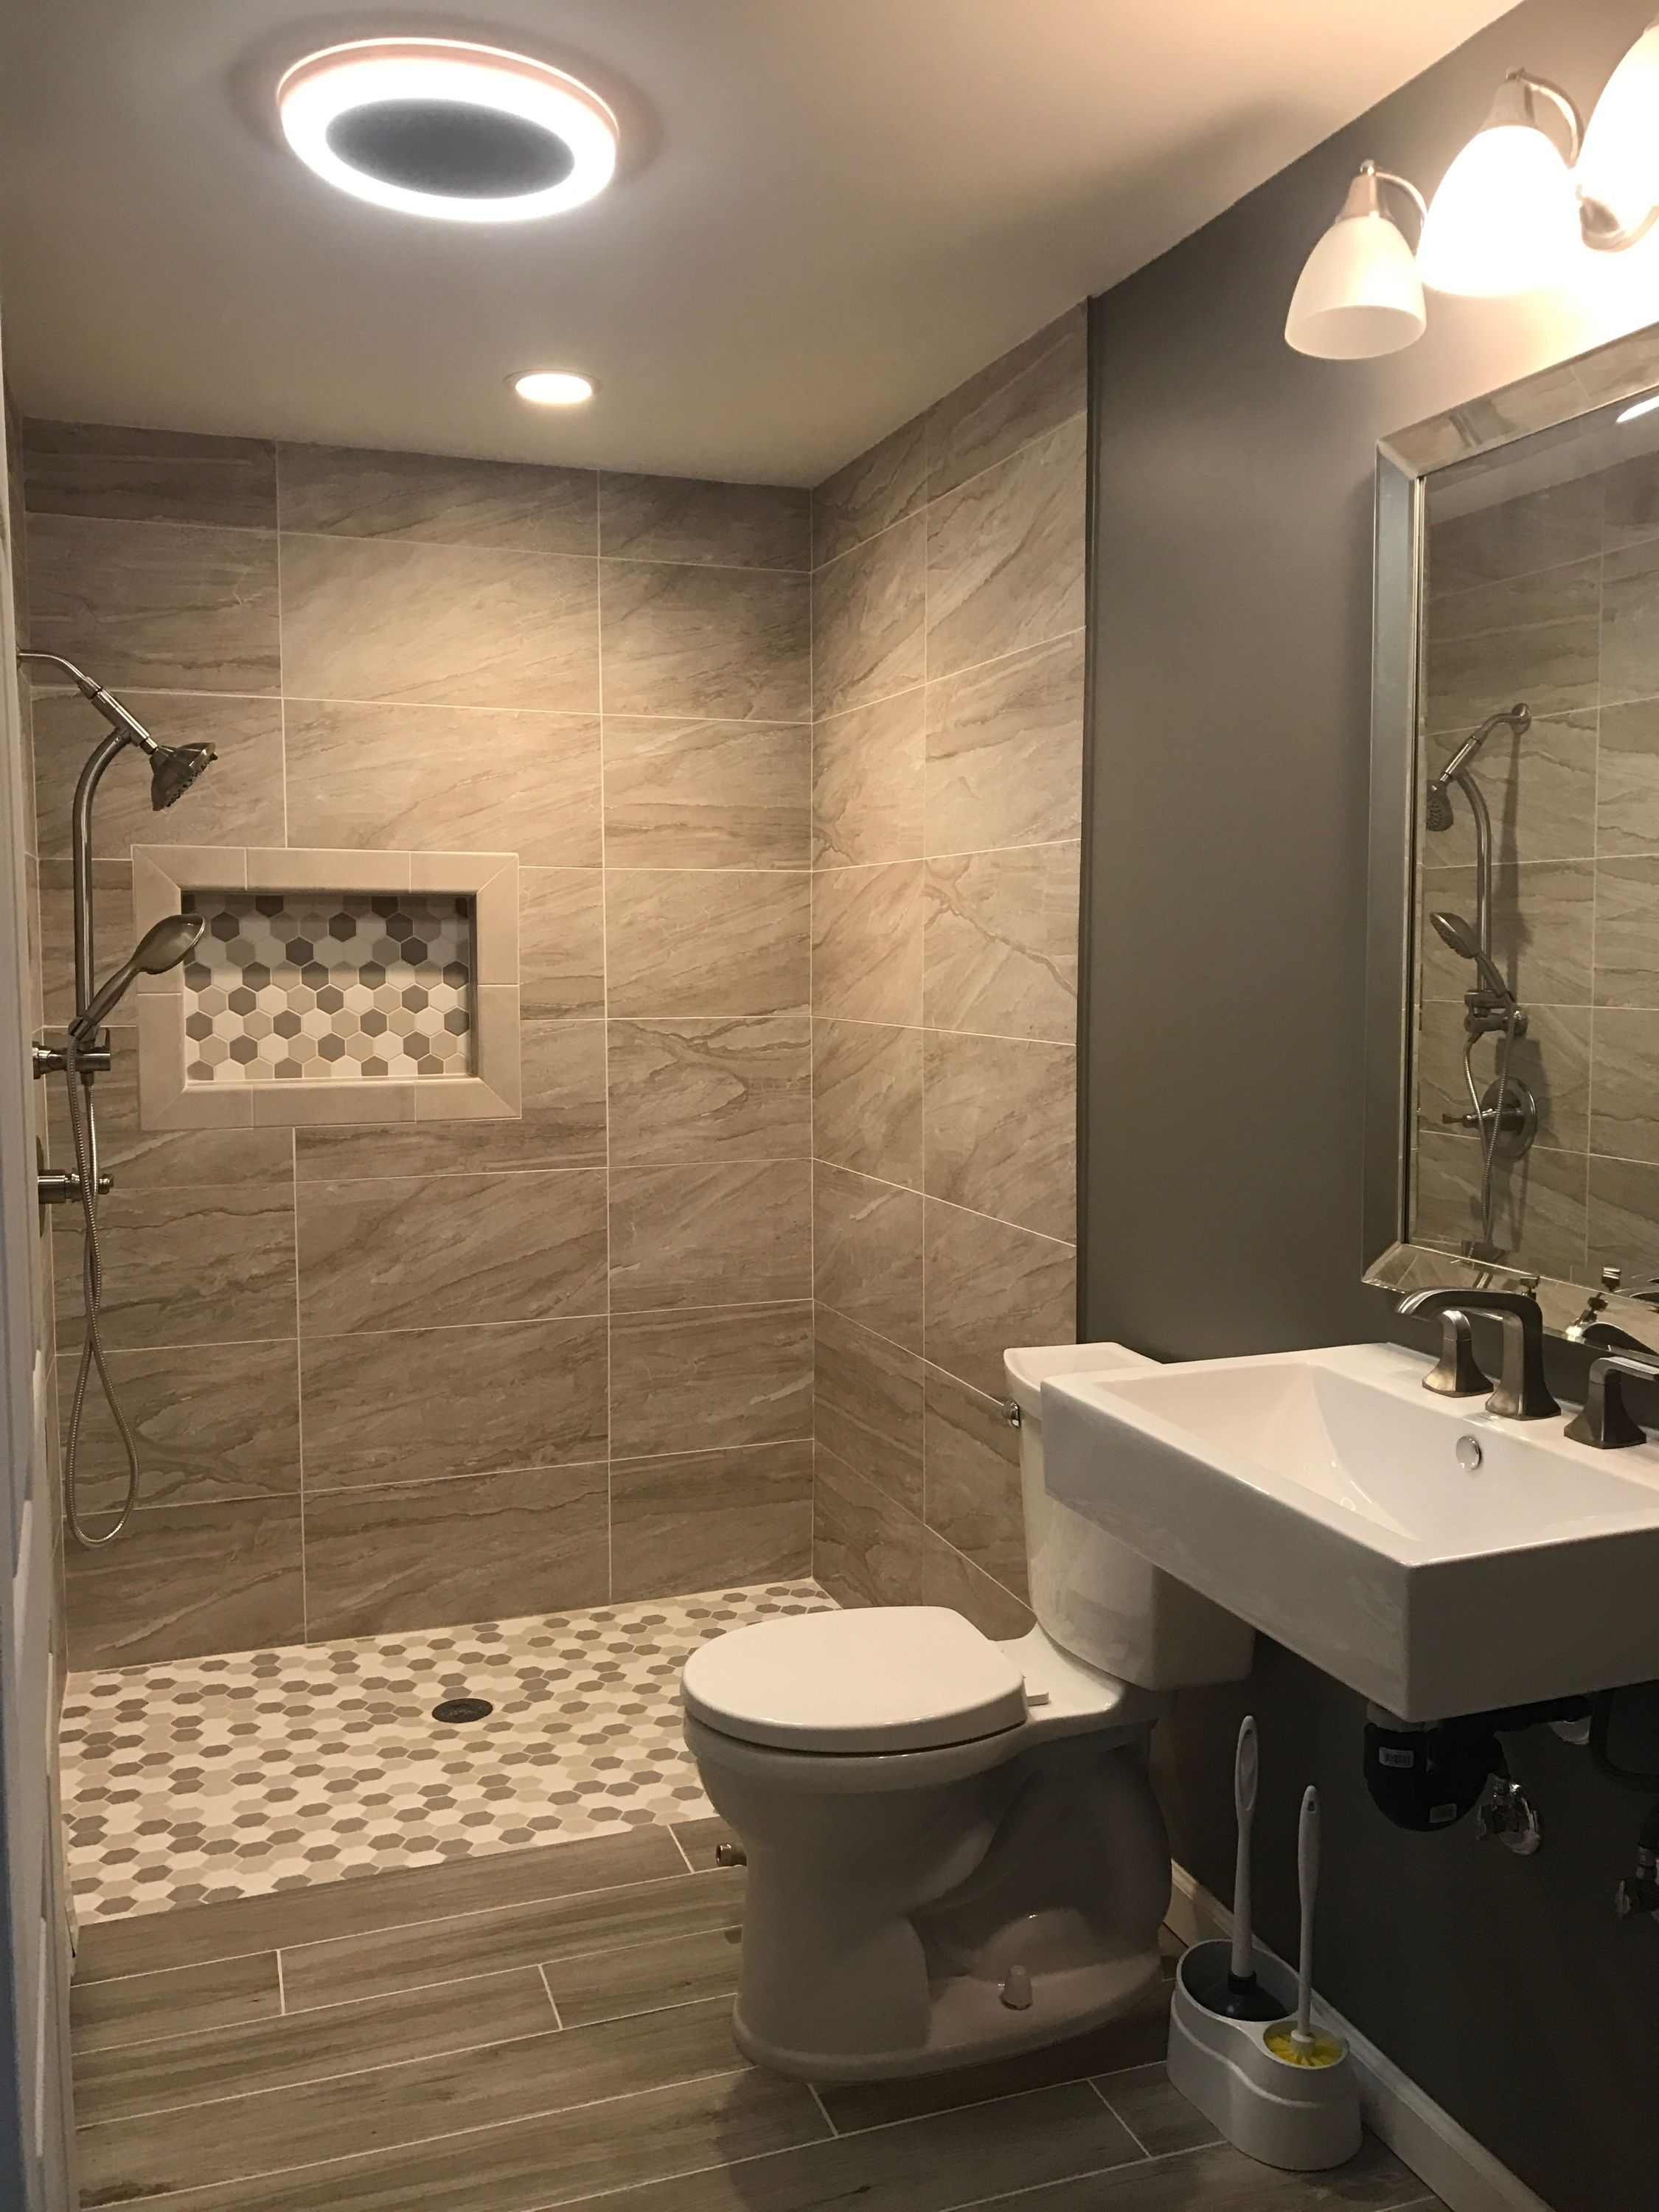 Bathroom Decor London Ontario